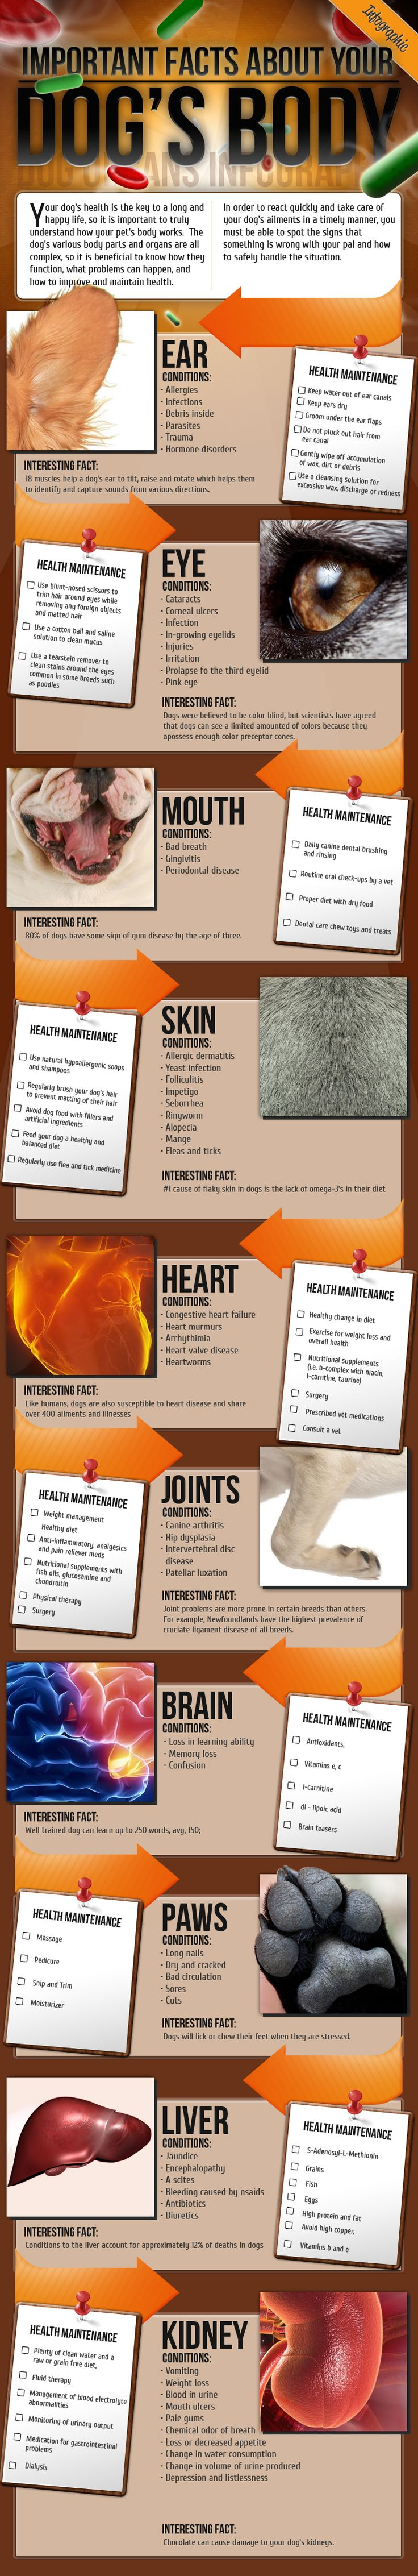 Important facts about your #dog's body. An #infographic to keep your dog healthy and happy: http://www.entirelypets.com/dog-organs-infographic.html?utm_source=pinterest&utm_medium=web&utm_campaign=epptpostinfo#utm_sguid=148622,d985045d-89ce-8bb7-388b-742a759ac421